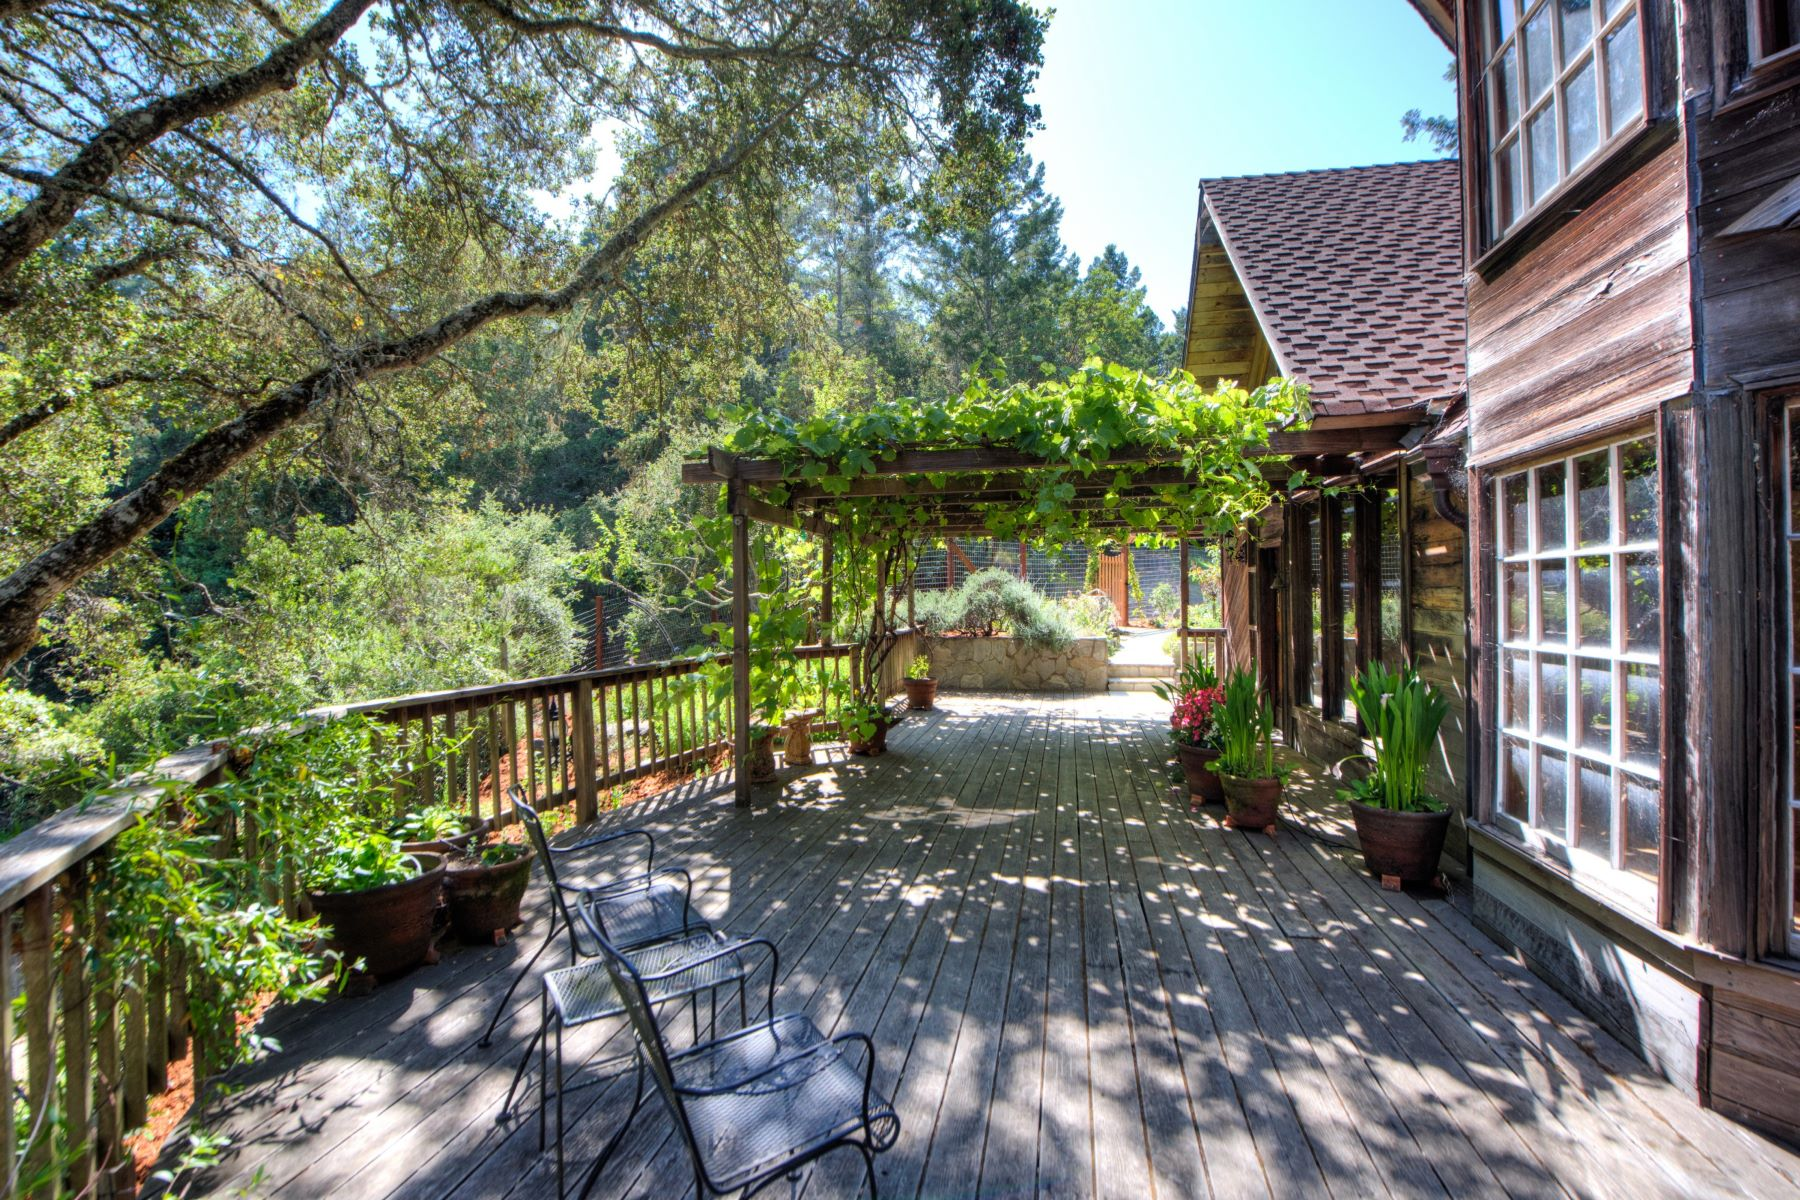 Single Family Home for Sale at Enchanting Setting 1949 Nicasio Valley Road Nicasio, California 94946 United States